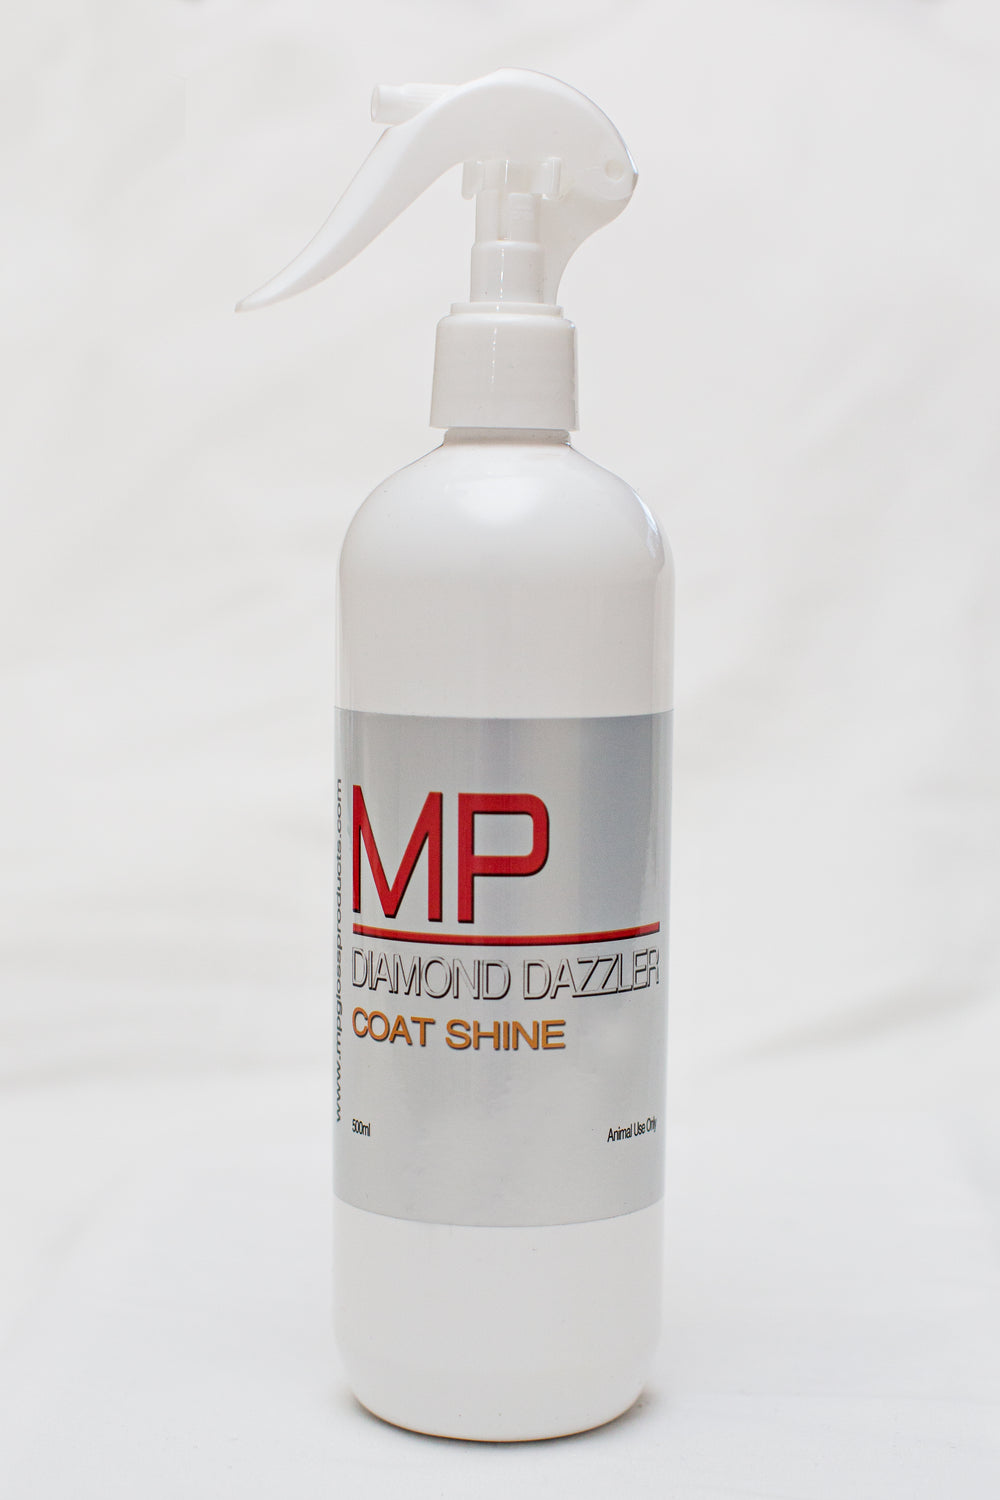 MP Gloss Diamond Dazzler 'After Wash' Coat Shine